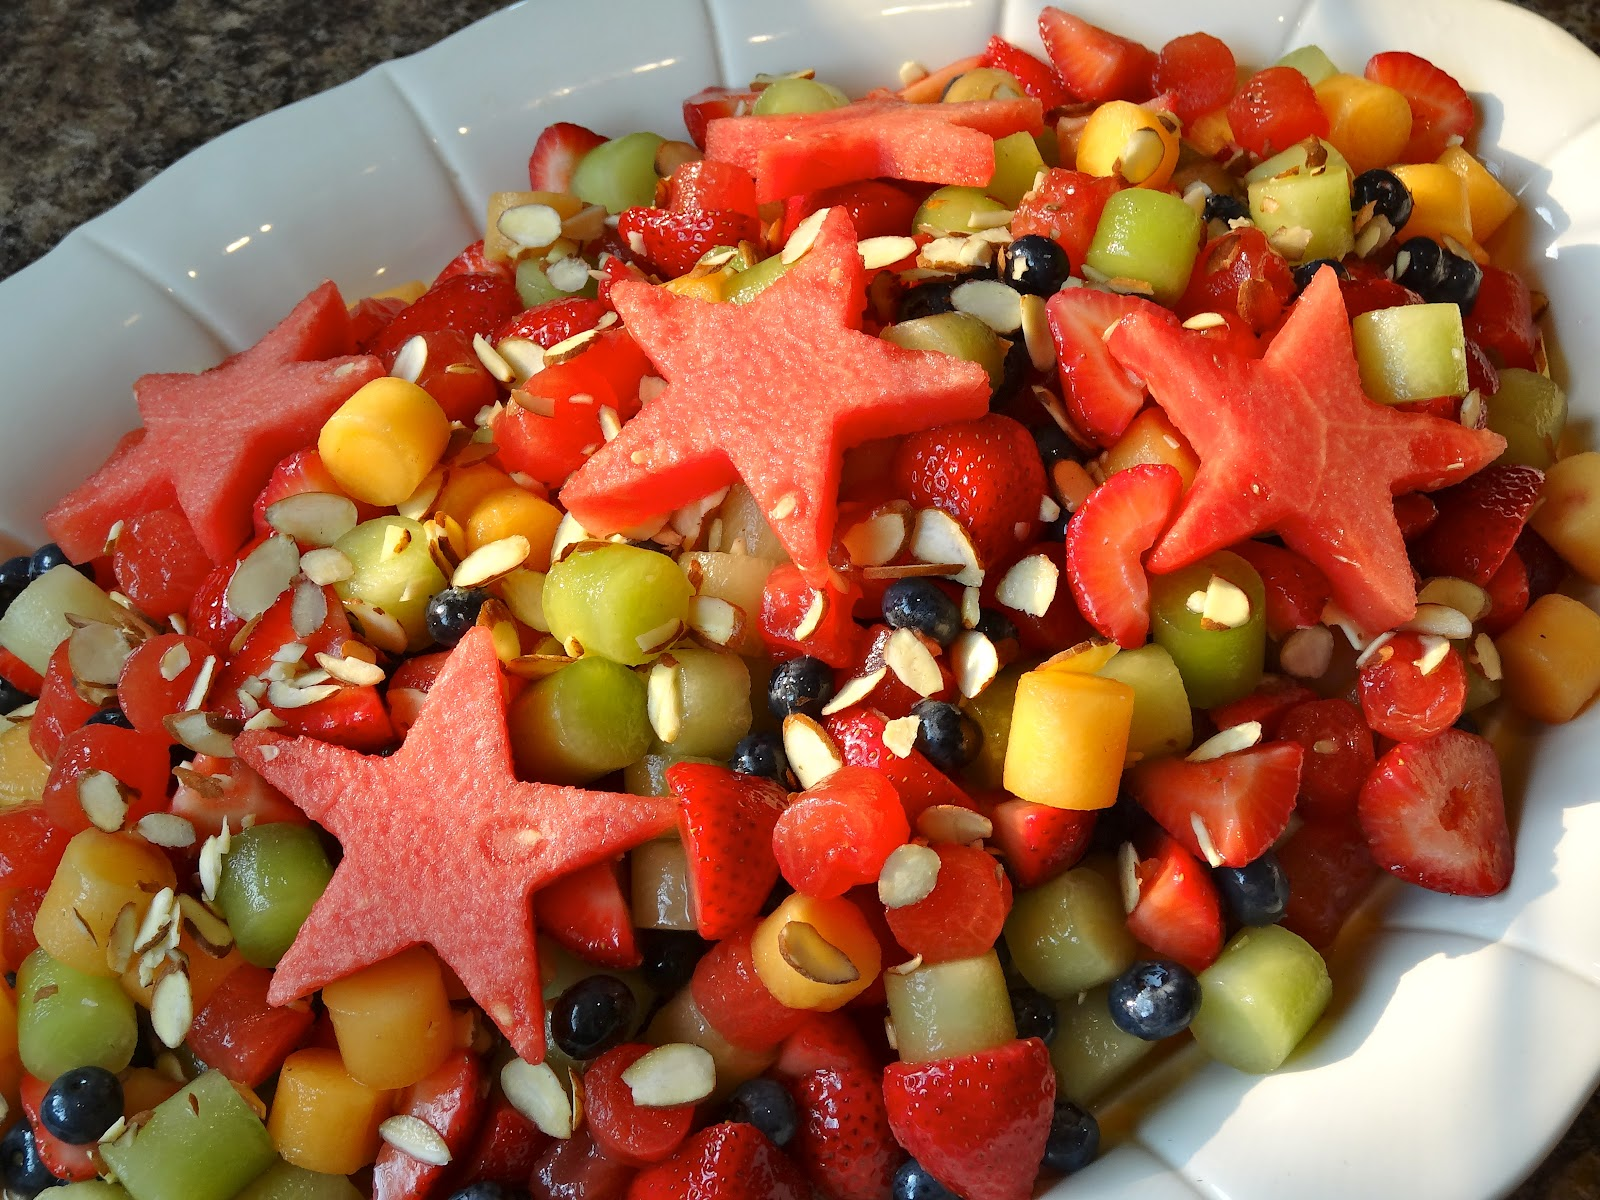 Fruit salad decoration recipe the image for Decoration fruit